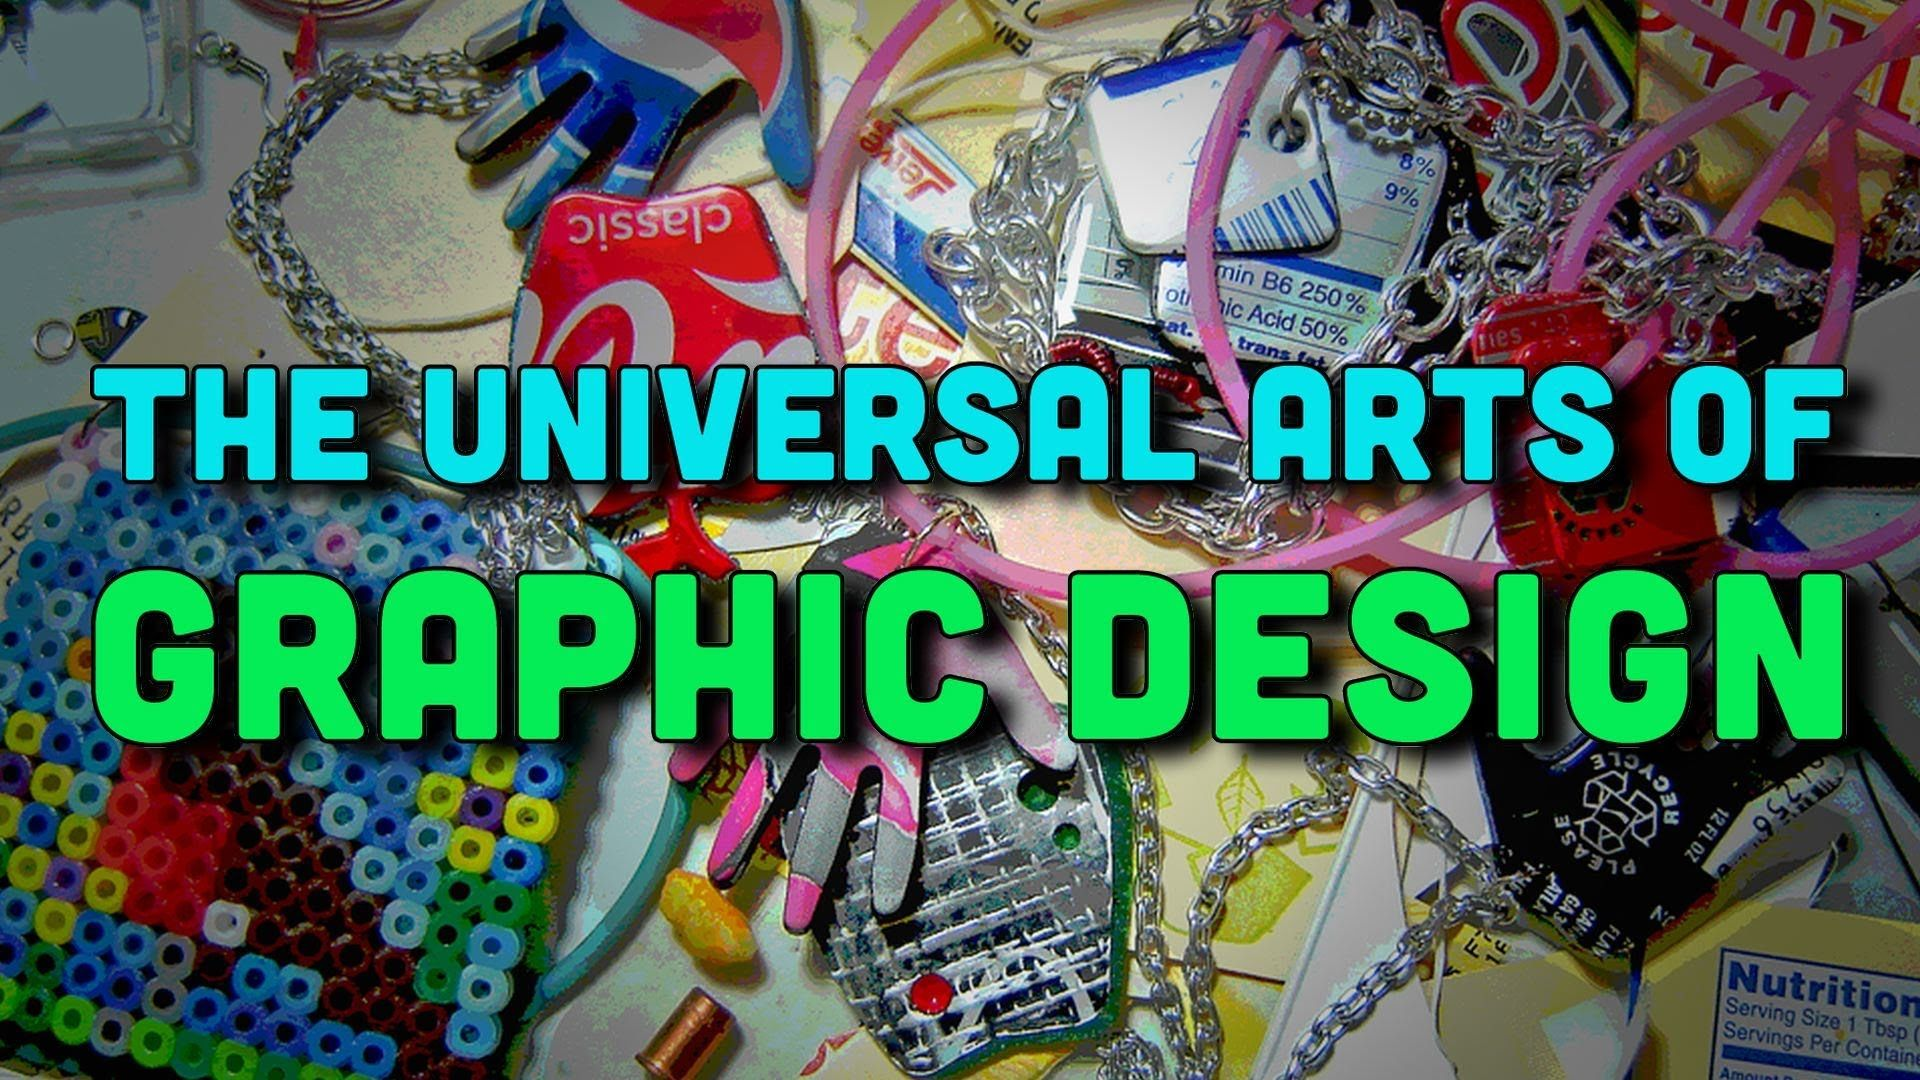 the universal arts of graphic design off book pbs digital